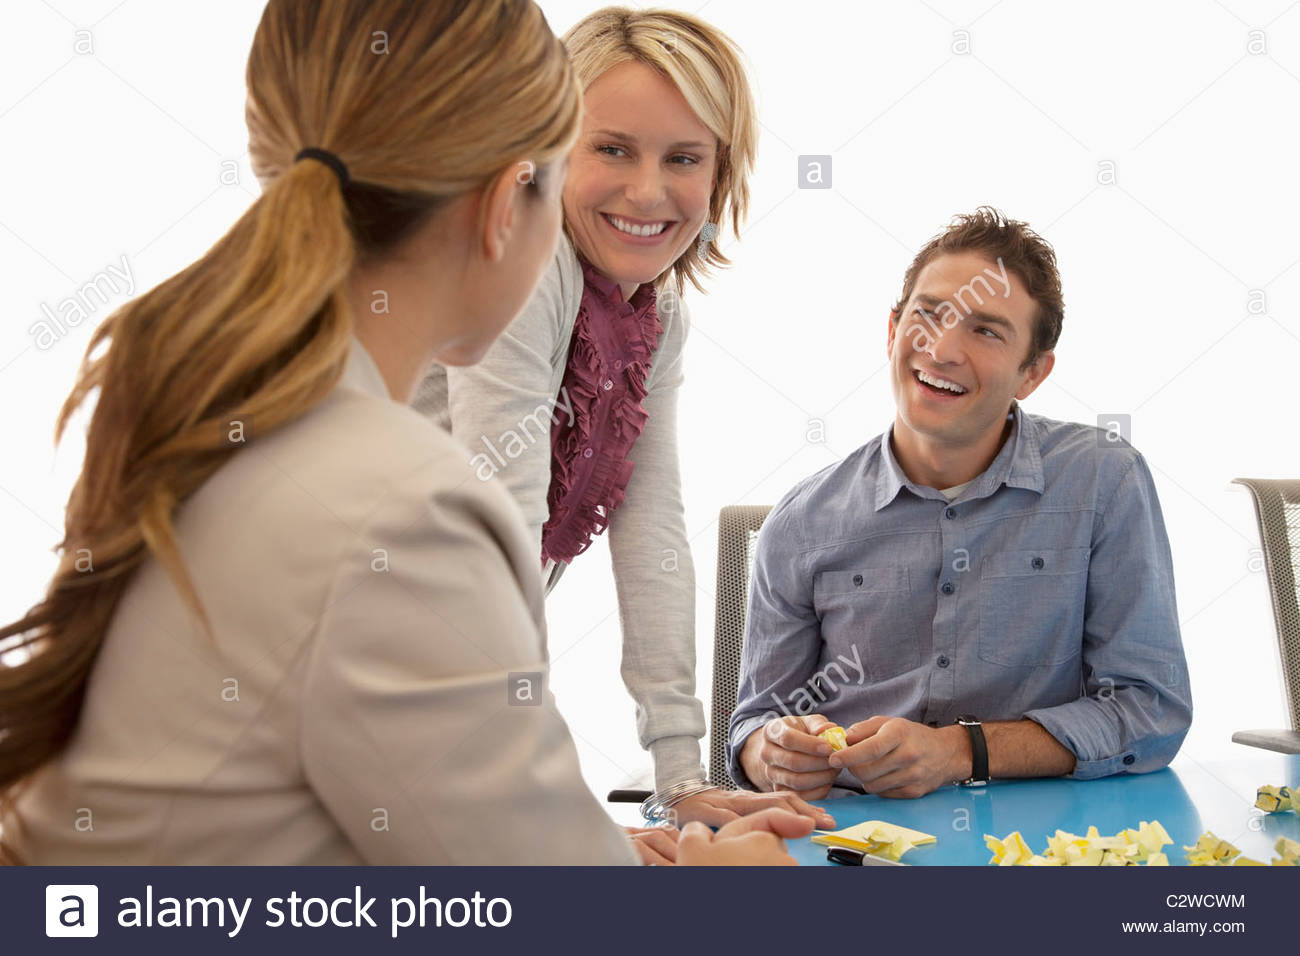 Business people working together in conference room - Stock Image